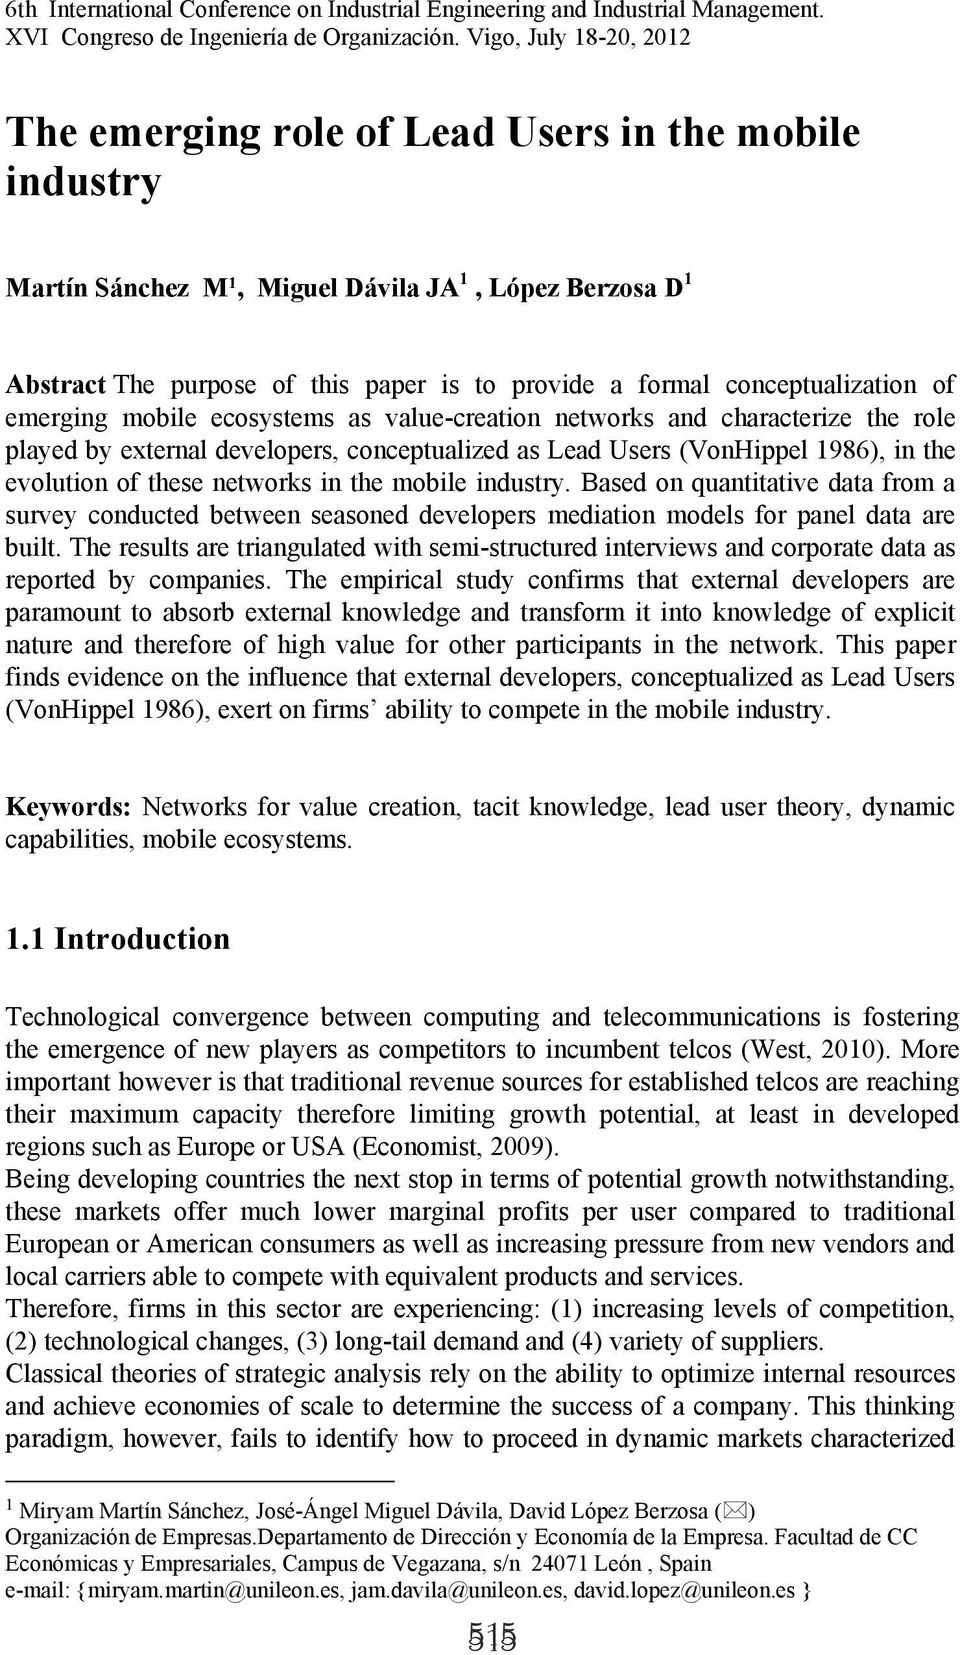 conceptualization of emerging mobile ecosystems as value-creation networks and characterize the role played by external developers, conceptualized as Lead Users (VonHippel 1986), in the evolution of